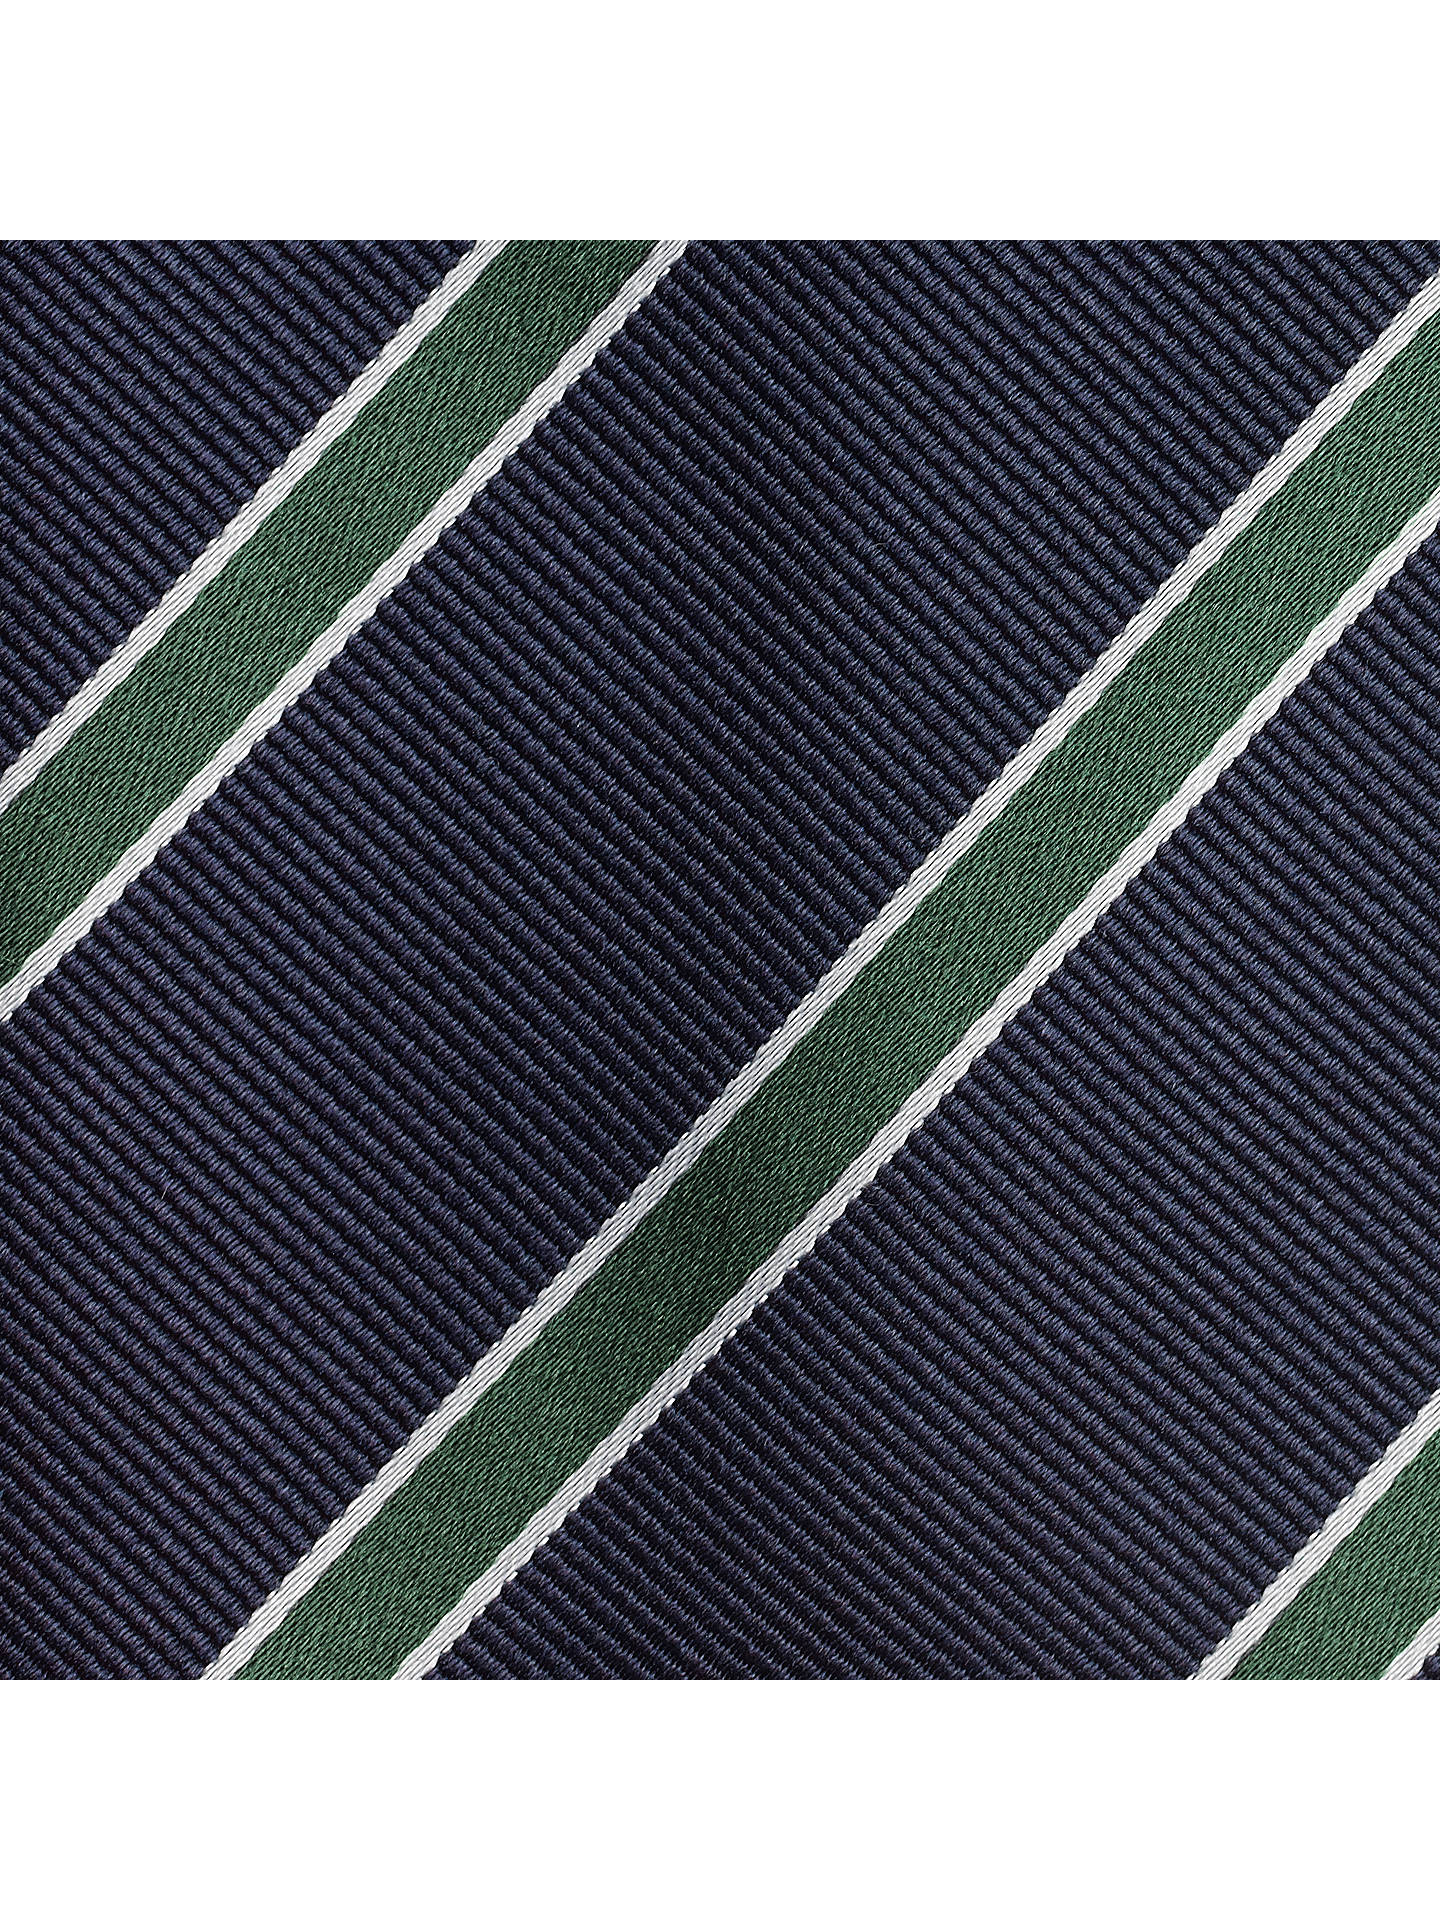 Buy John Lewis Regimental Stripe Tie, Navy/Green Online at johnlewis.com